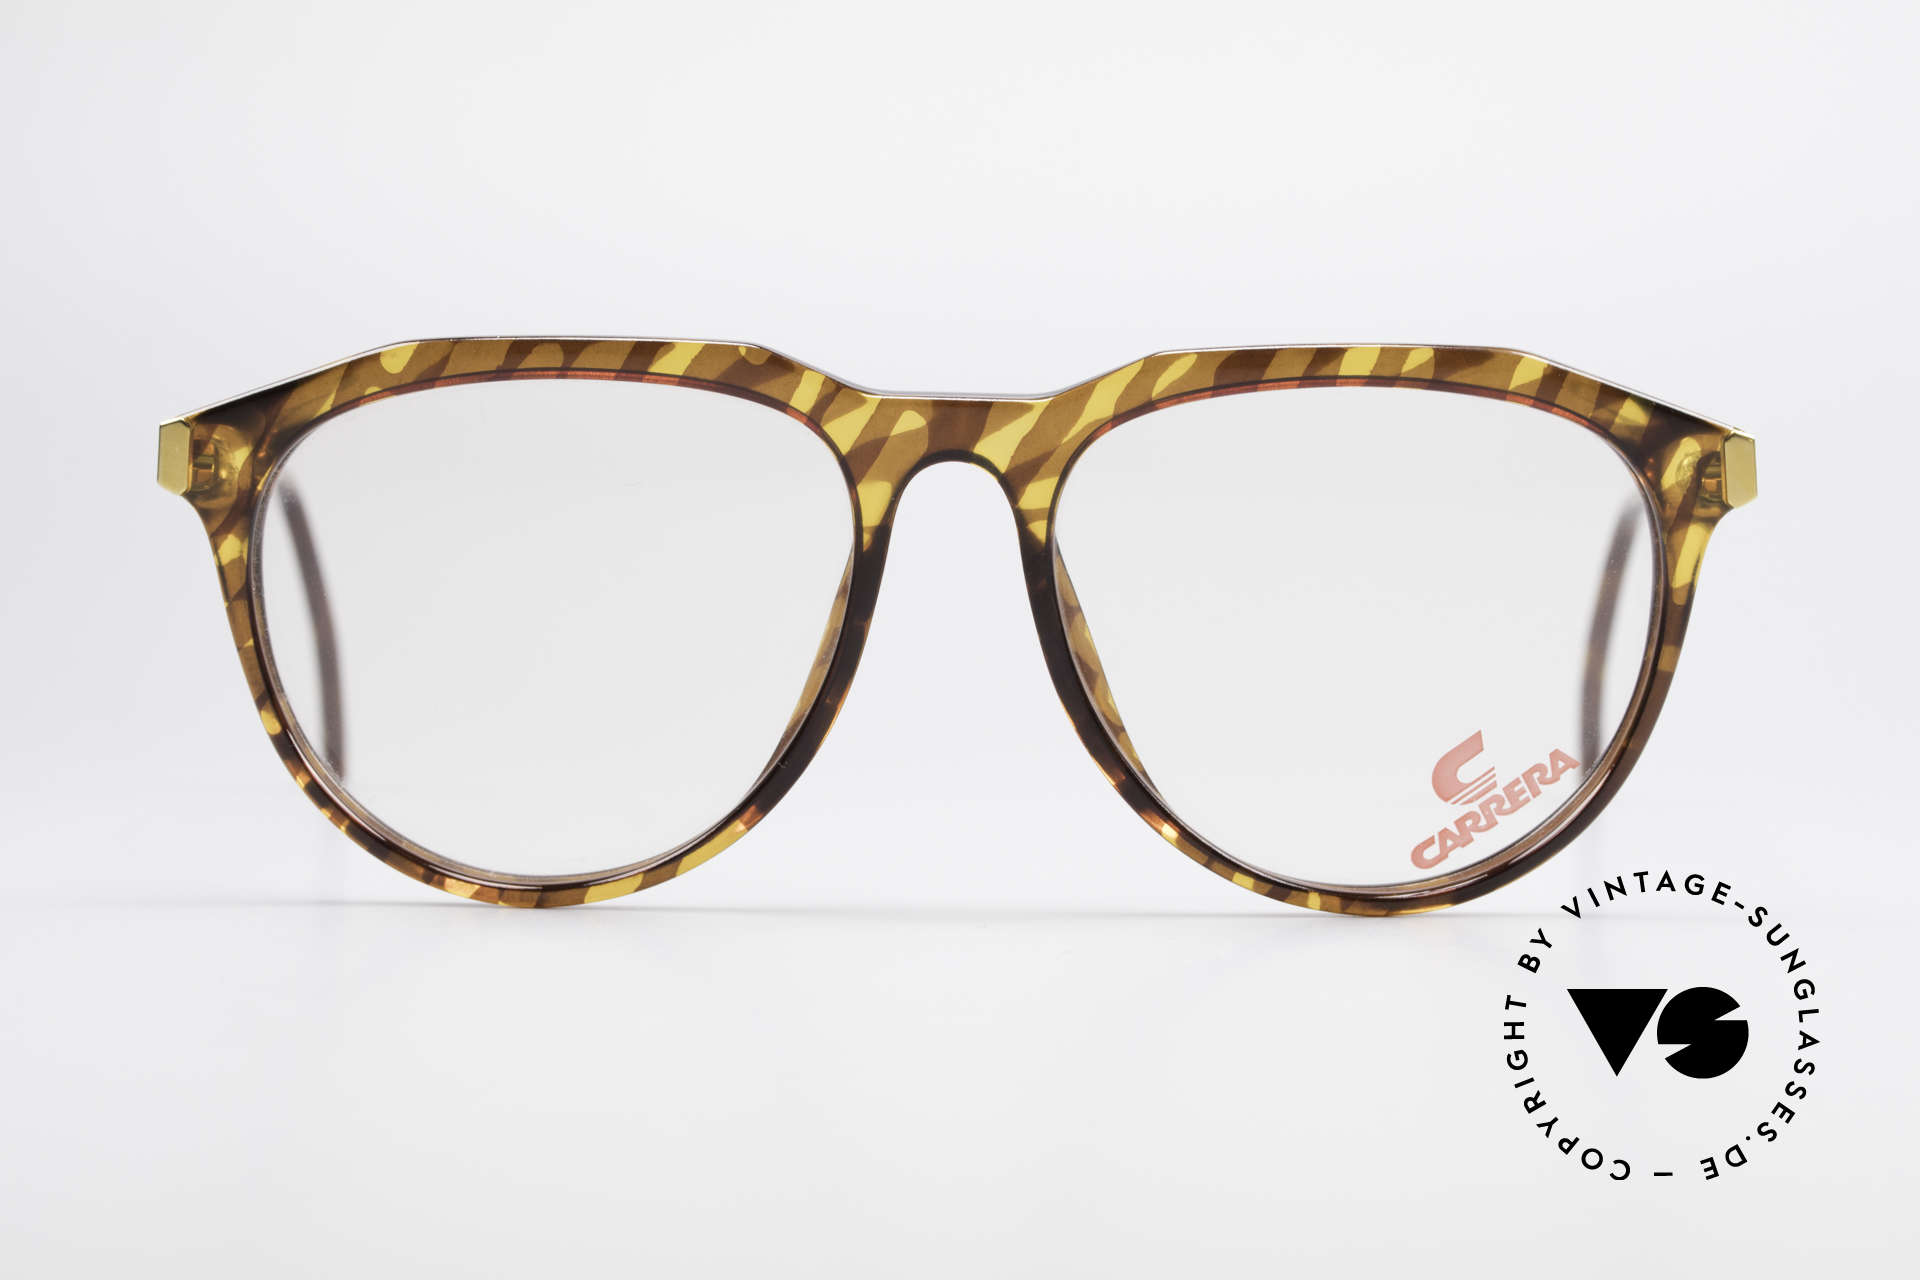 Carrera 5361 90's Optyl Eyeglasses Panto, high-end Optyl material frame; made in Germany, Made for Men